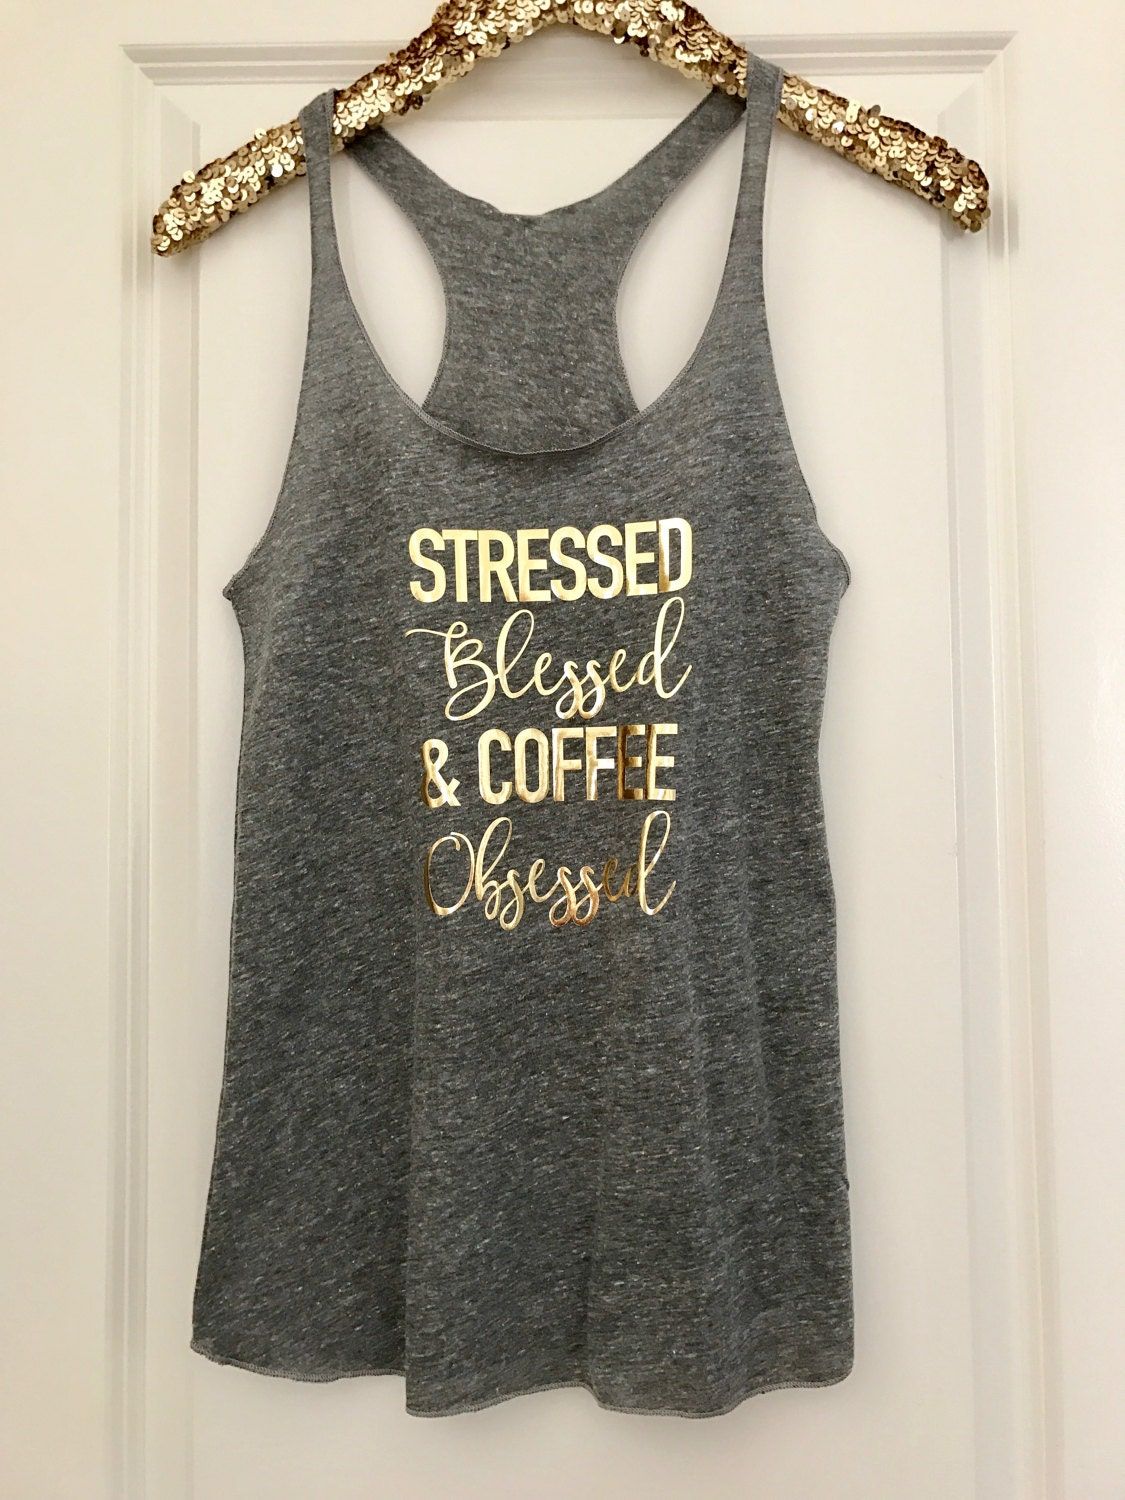 Stressed Blessed & Coffee Obsessed Racerback Tank Top // Bridal, Bride, Bachelorette, BFF / 6001